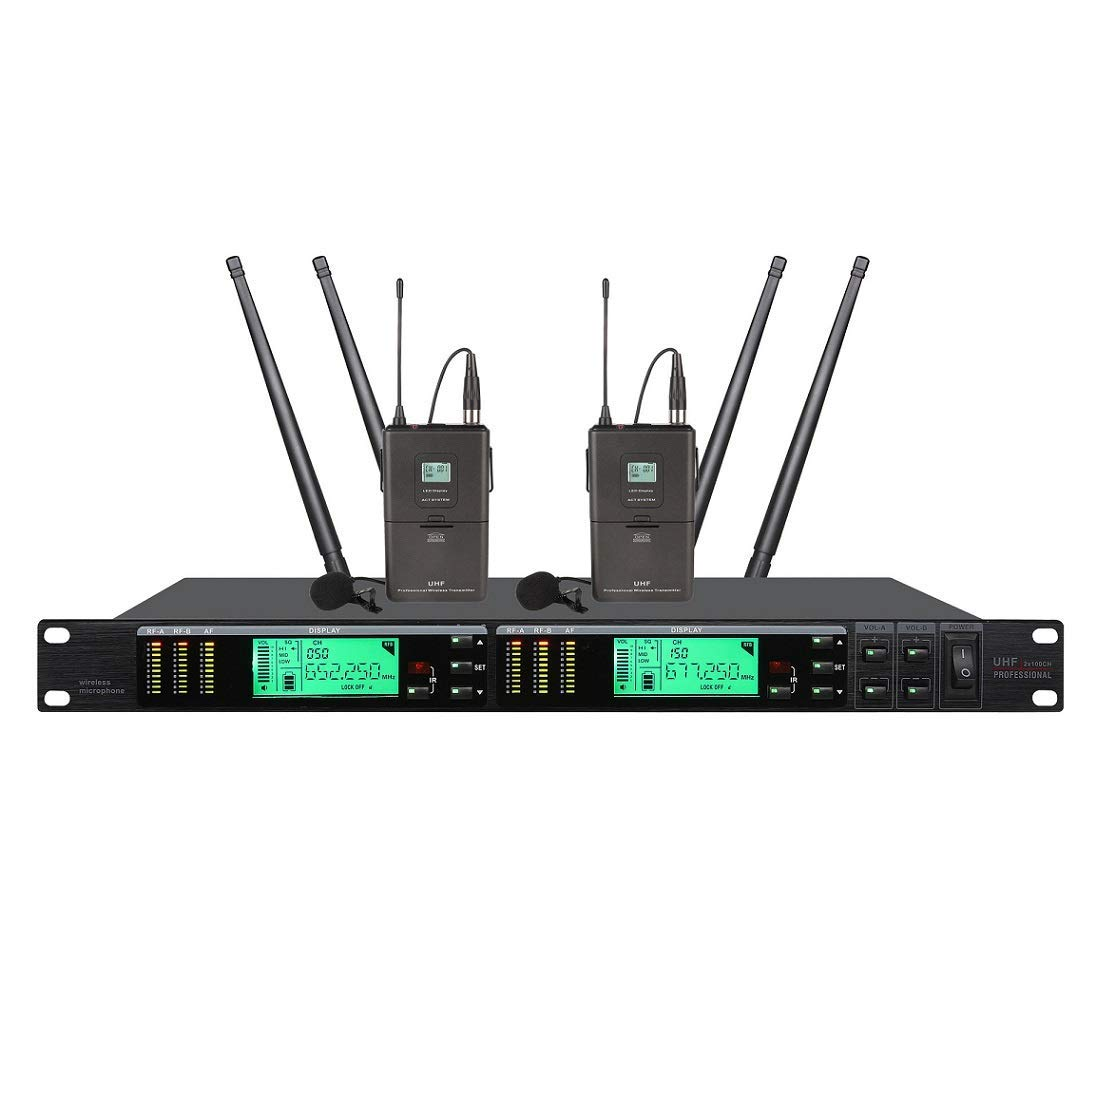 Poly audio Wireless Lavalier Microphones Professional Long-Range True Diversity UHF Wireless Microphone System Stage Performance Microphone for Church,Home Karaoke, Business Meetings